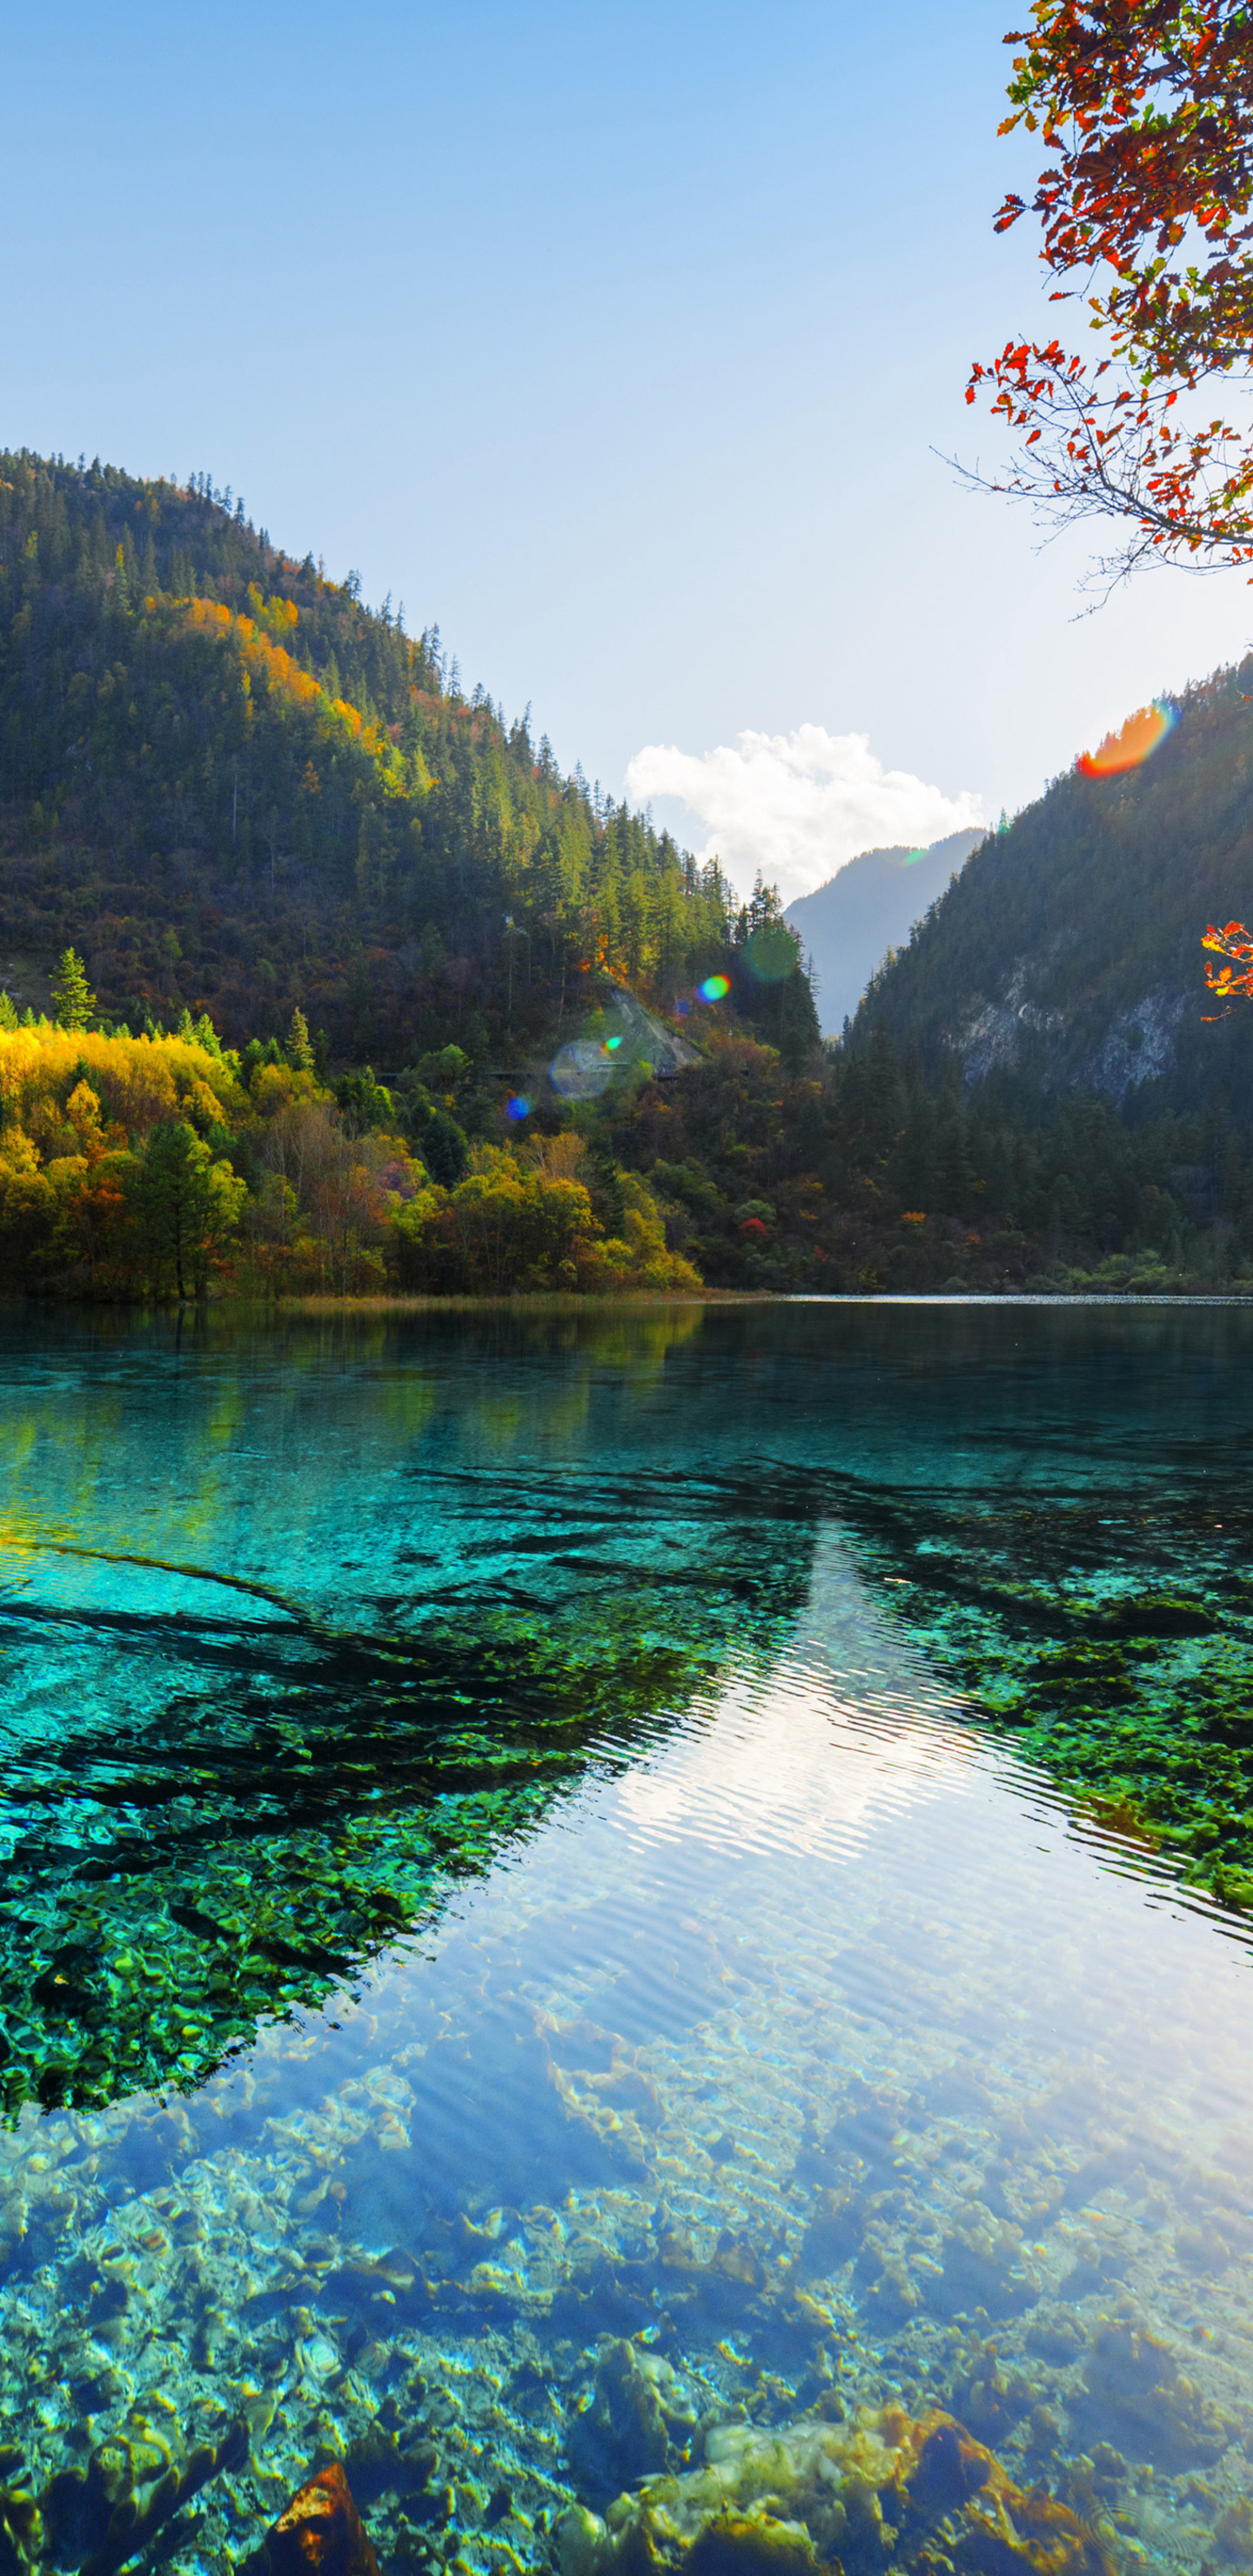 Get Inspired For High Quality 4k Resolution Ultra Hd Nature Wallpapers Wallpaper